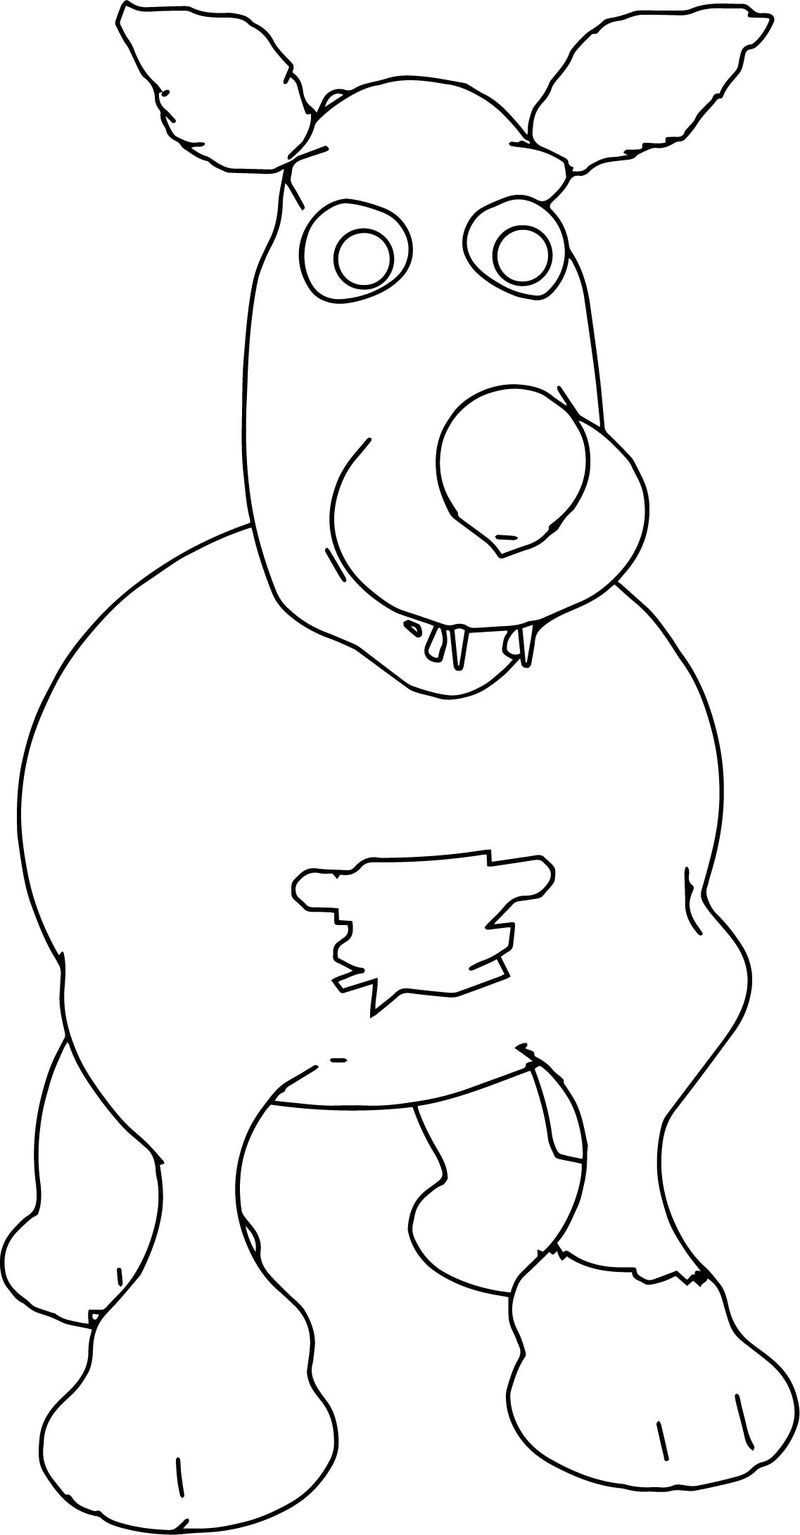 Woofie Dog Coloring Page